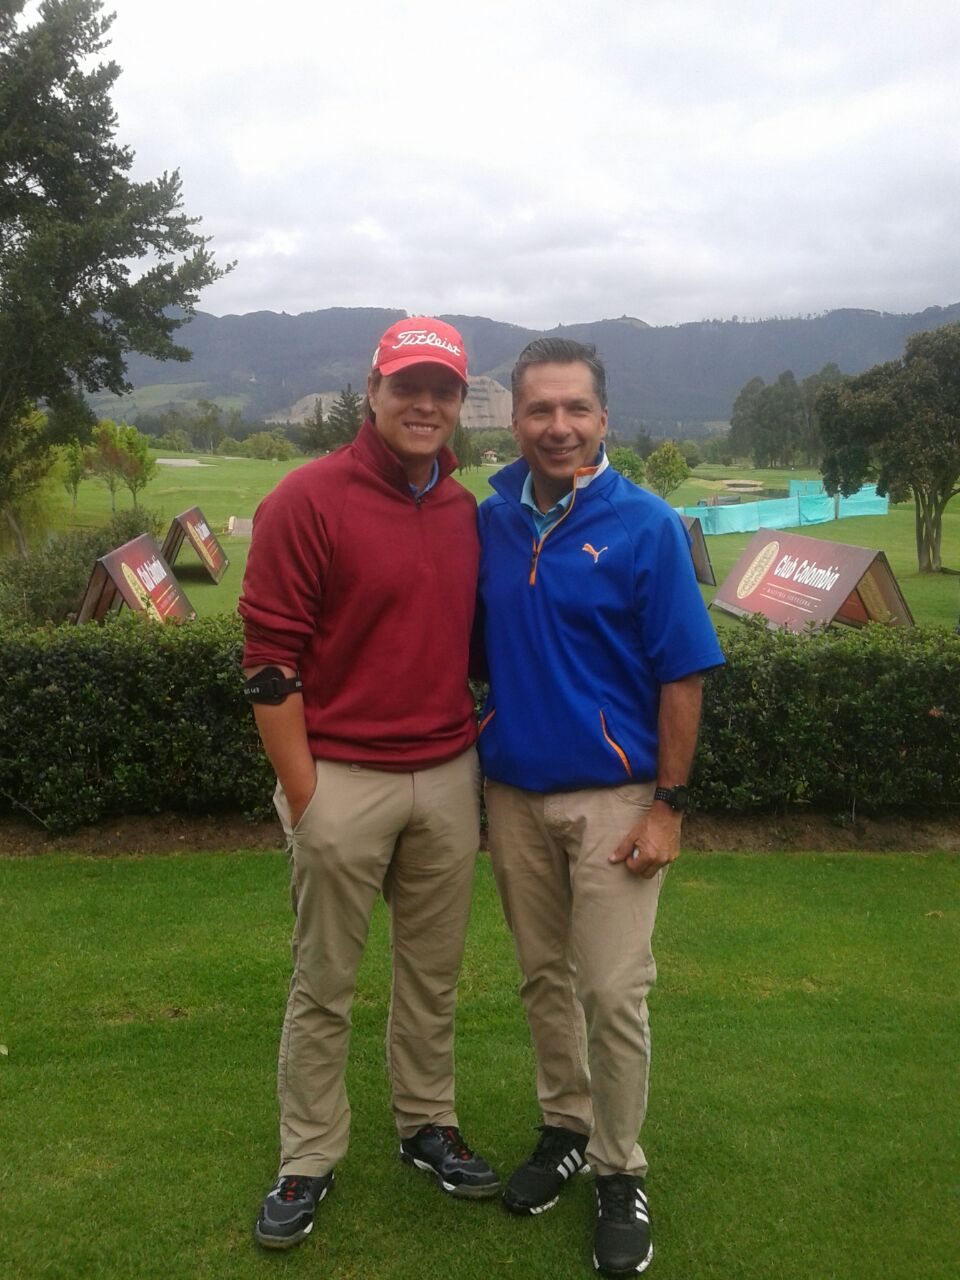 Iván Vivas y William Briceño, ganadores del Club Colombia Tour en el Club Hatogrande